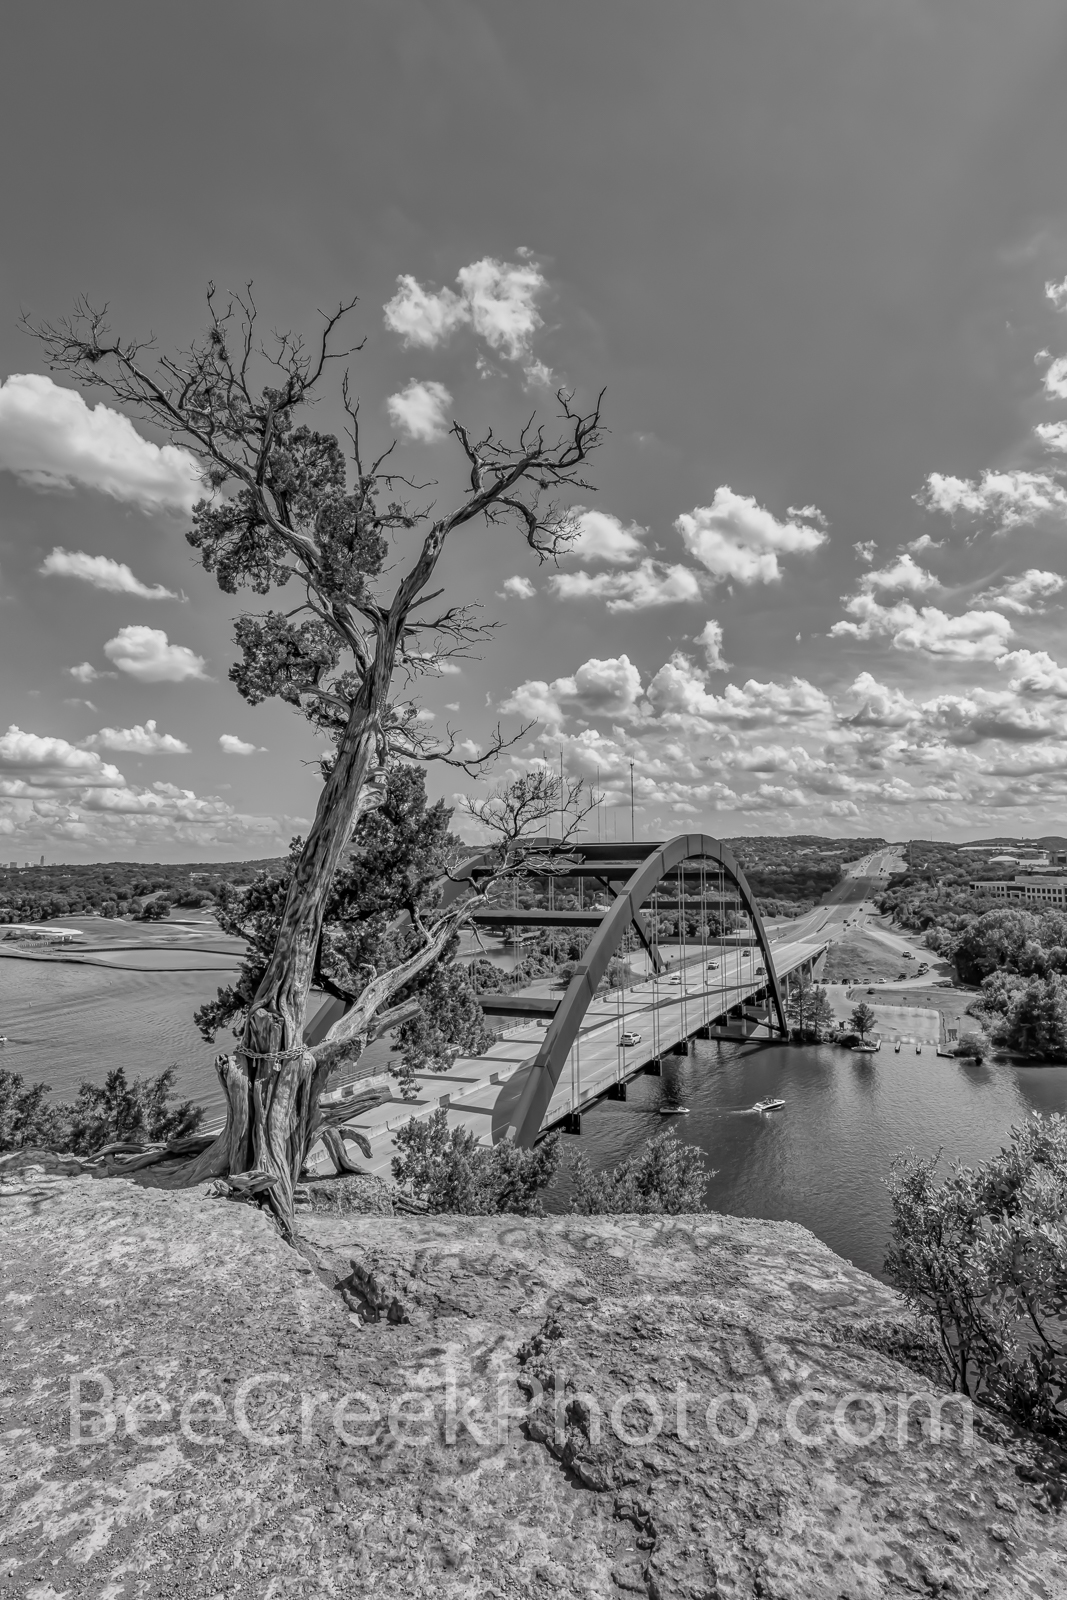 austin pennybacker overlook, vertical, austin 360 bridge, austin pennybacker bridge, austin texas, texas hill country, lake austin, colorado river, hwy 360, capitol of texas hwy. black and white, b w,, photo